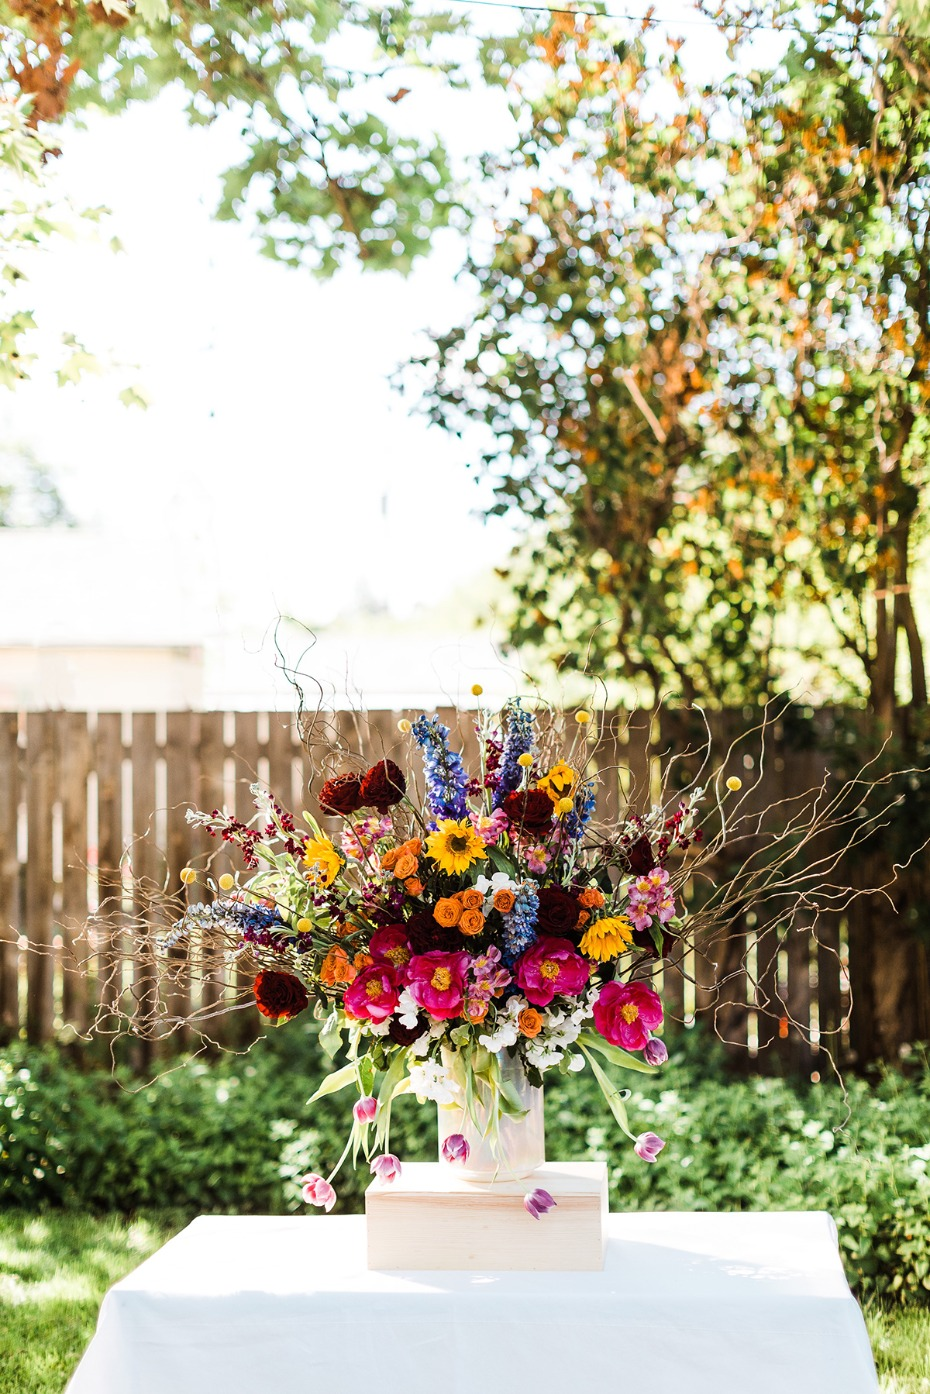 boho chic floral arrangement from Wholesale Flowers by FiftyFlowers.com